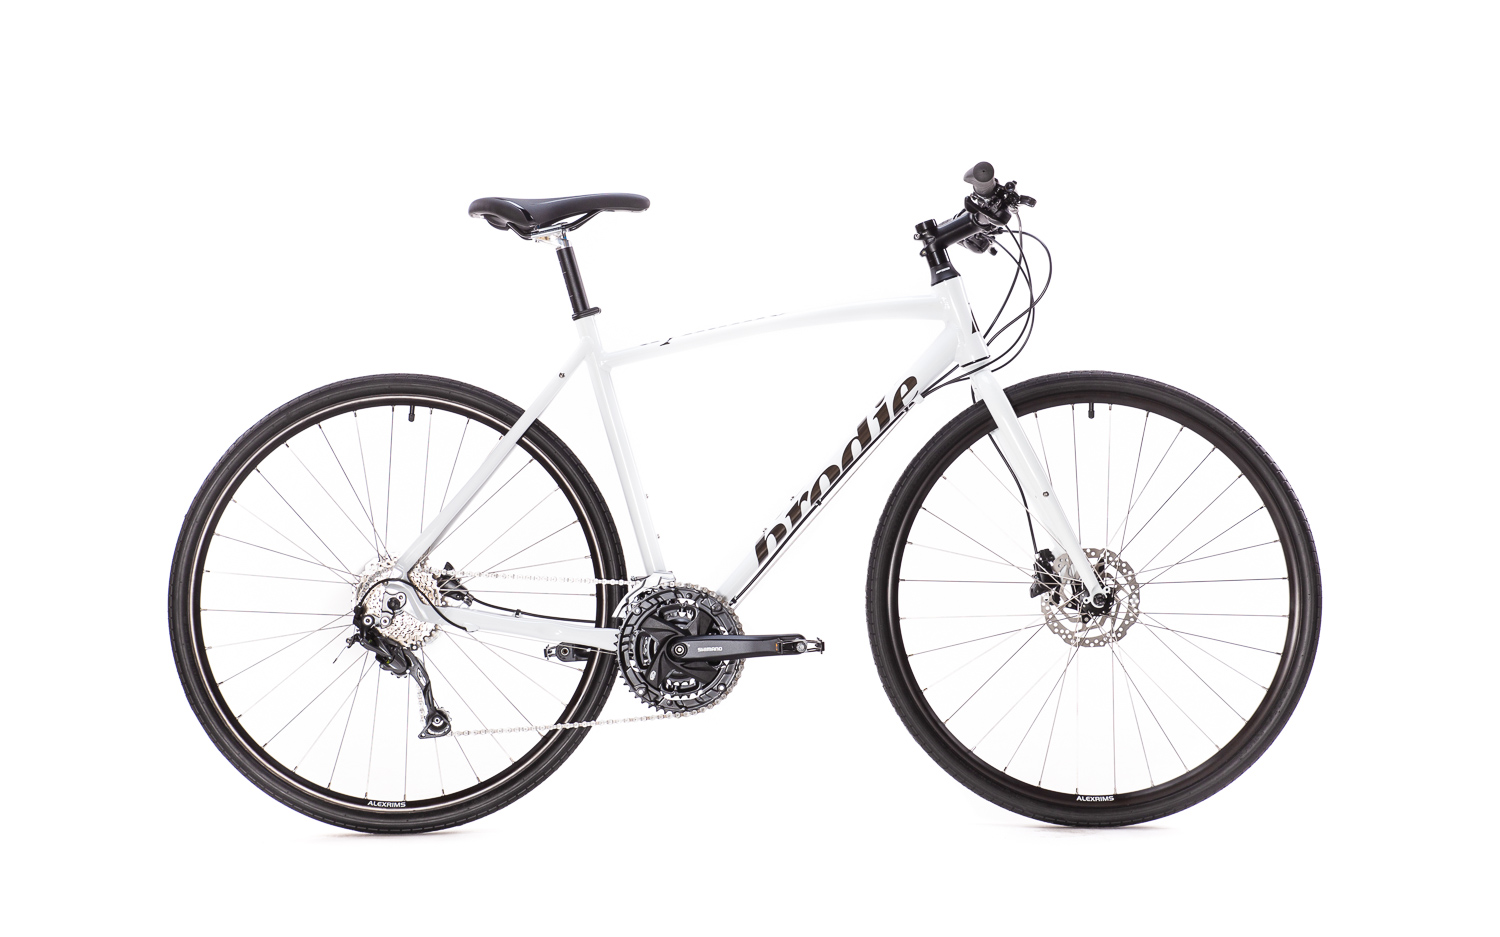 Have a look at the Dynamo in our Flat Bar Road Series - $999